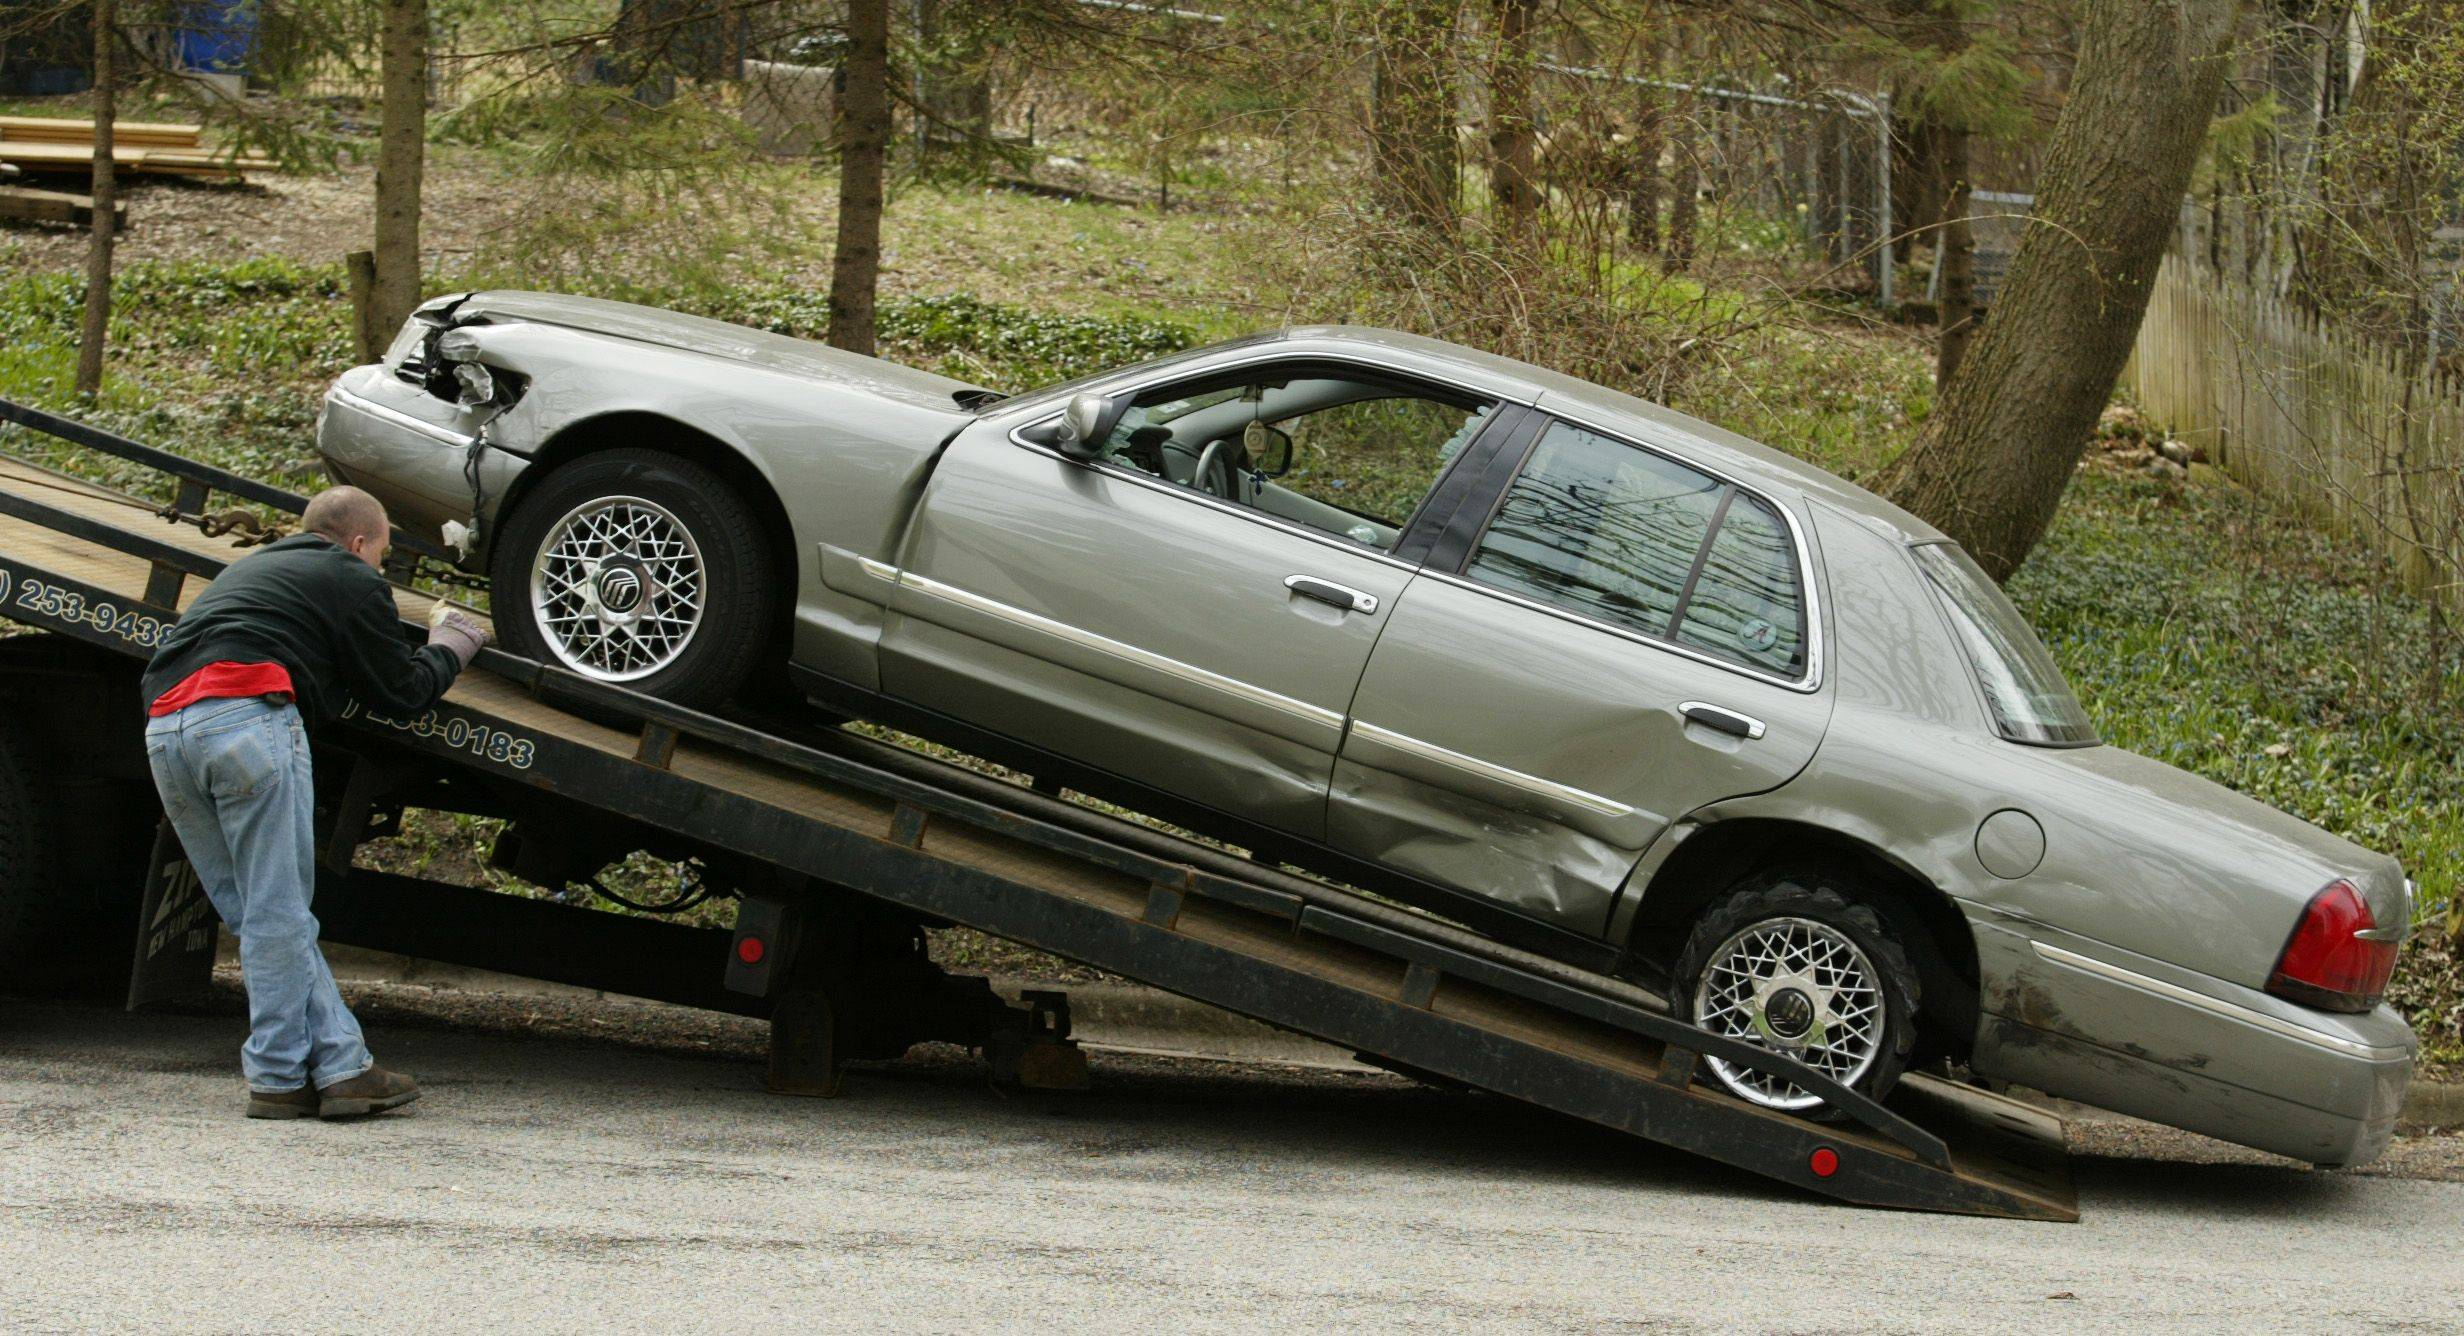 Sean Dourlain of Hillside Towing brings a vehicle involved in a high-speed chase Thursday morning up on a flatbed truck after the driver's apprehension near downtown East Dundee. The driver, described by witnesses as a young man, was wanted as part of a death investigation in Arlington Heights.